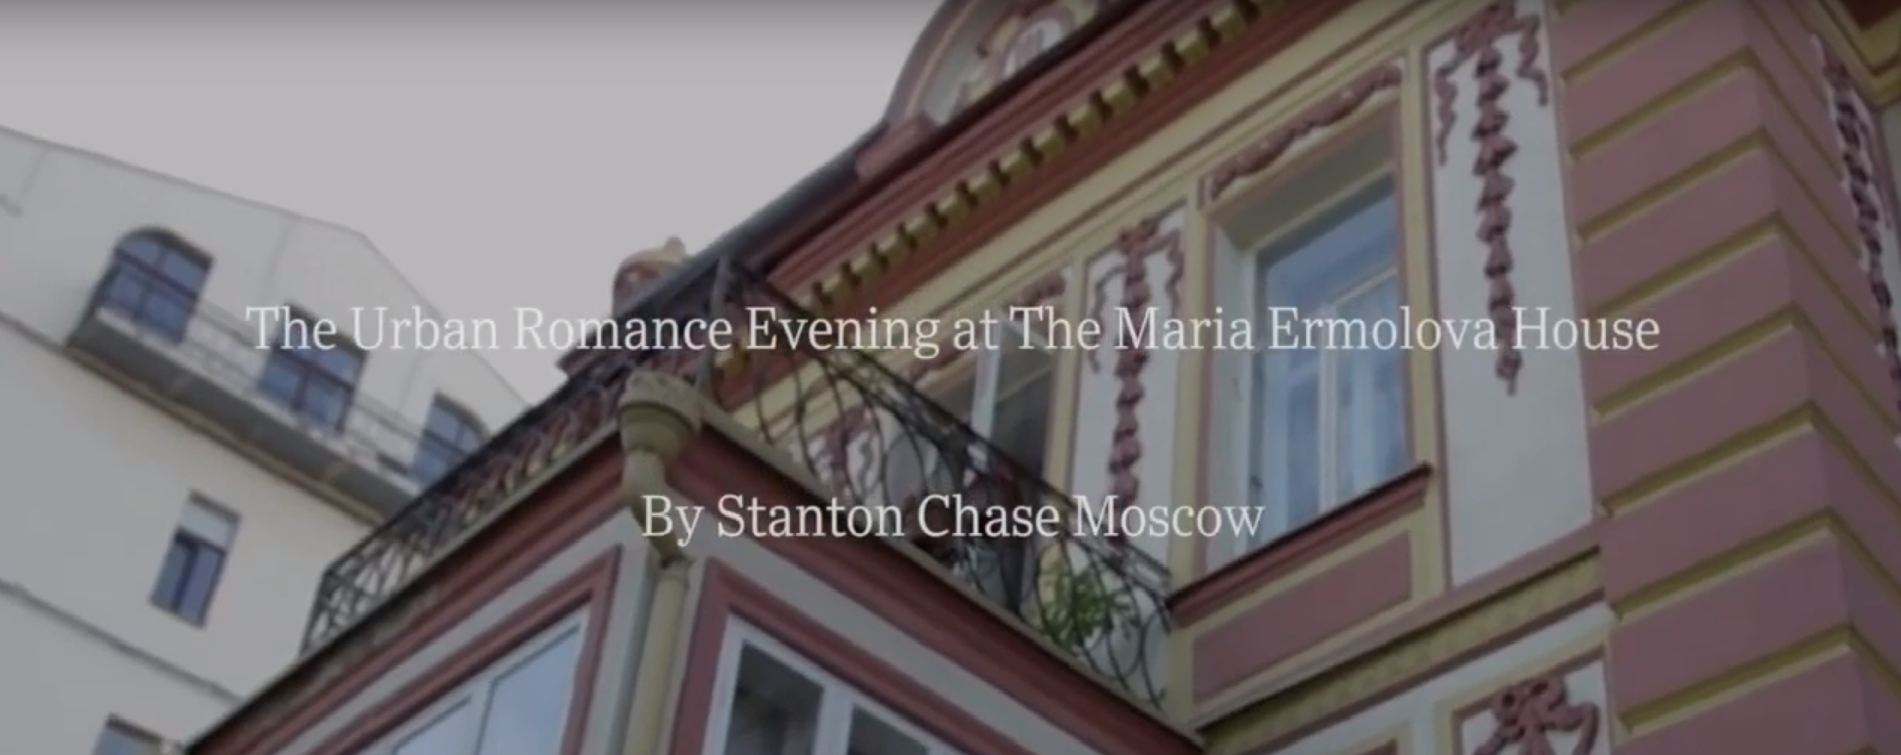 Urban Romance Evening at the Maria Ermolova House Cover Image